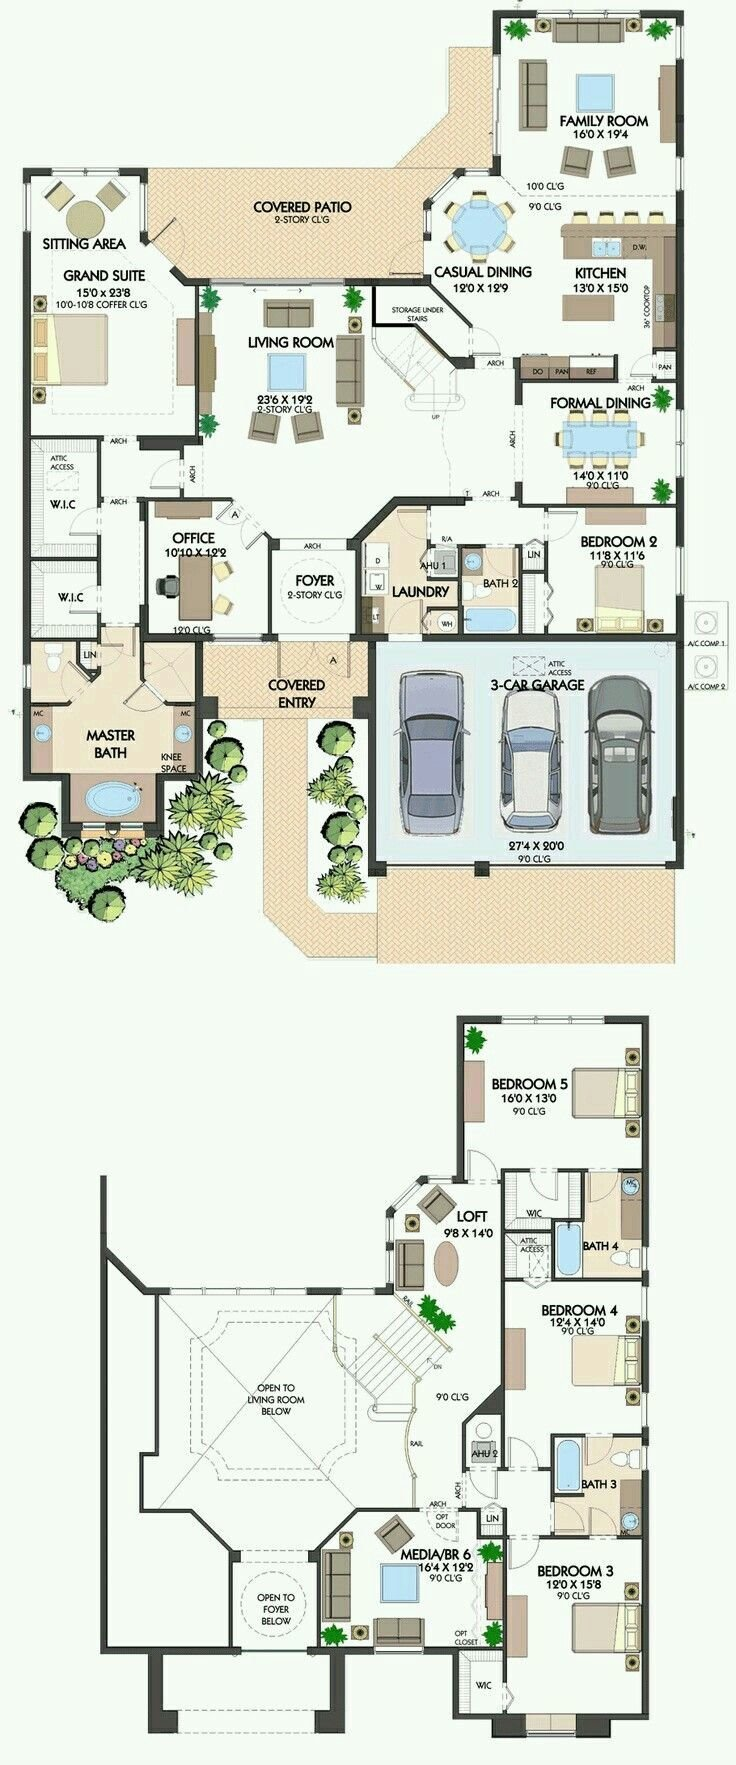 Best Pin By Stanley On Floor Plans In 2019 Pinterest With Pictures